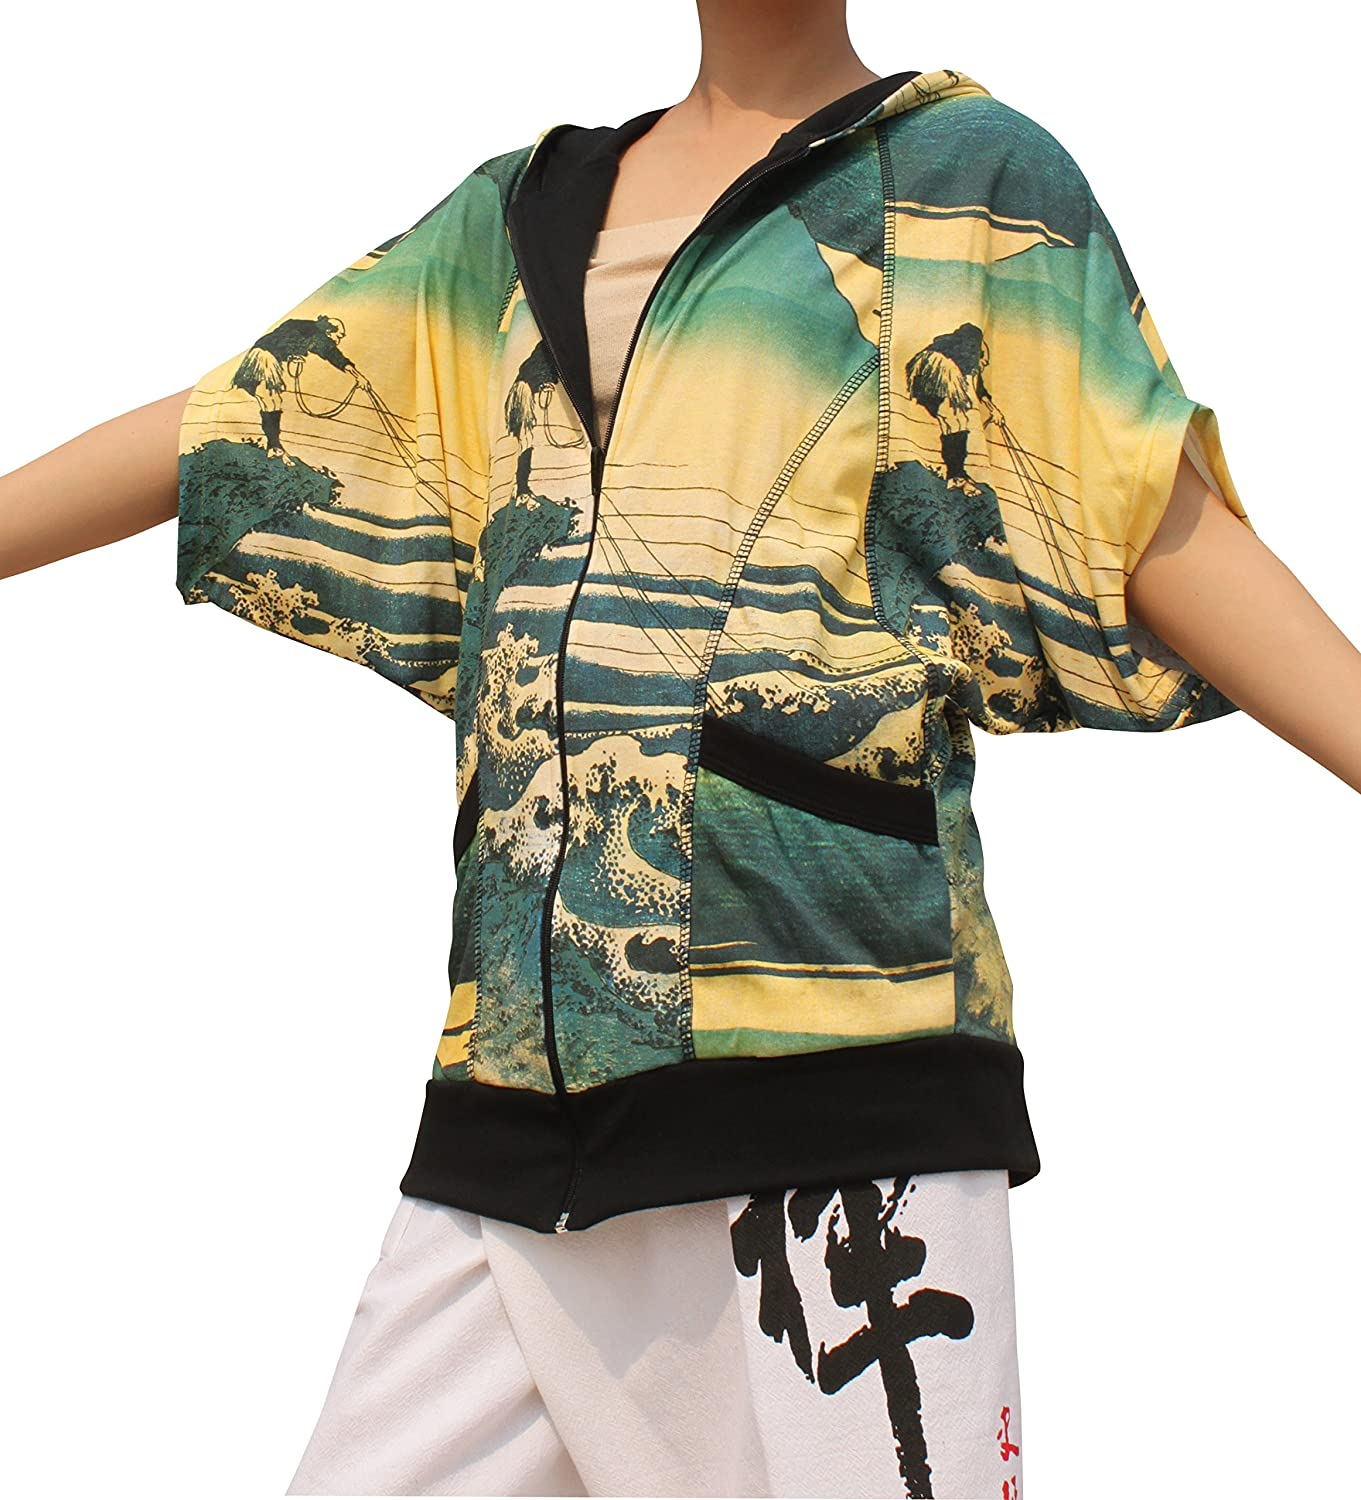 Butterfly Wing Jacket Hoody RaanPahMuang Salvadore Dali Galatea of The Spheres